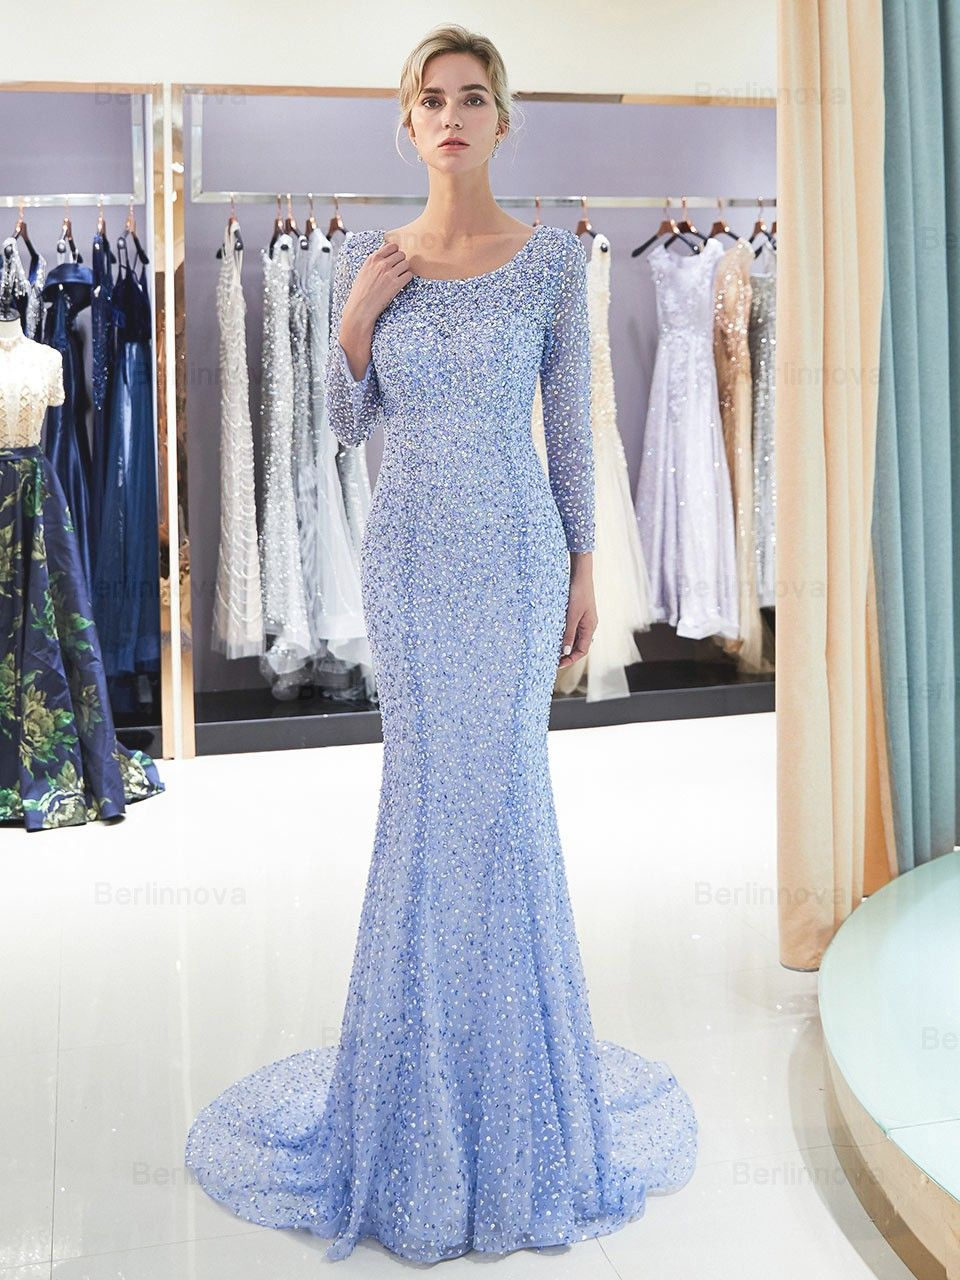 lang mermaid beateu blau strasssteinen abendkleid ballkleid